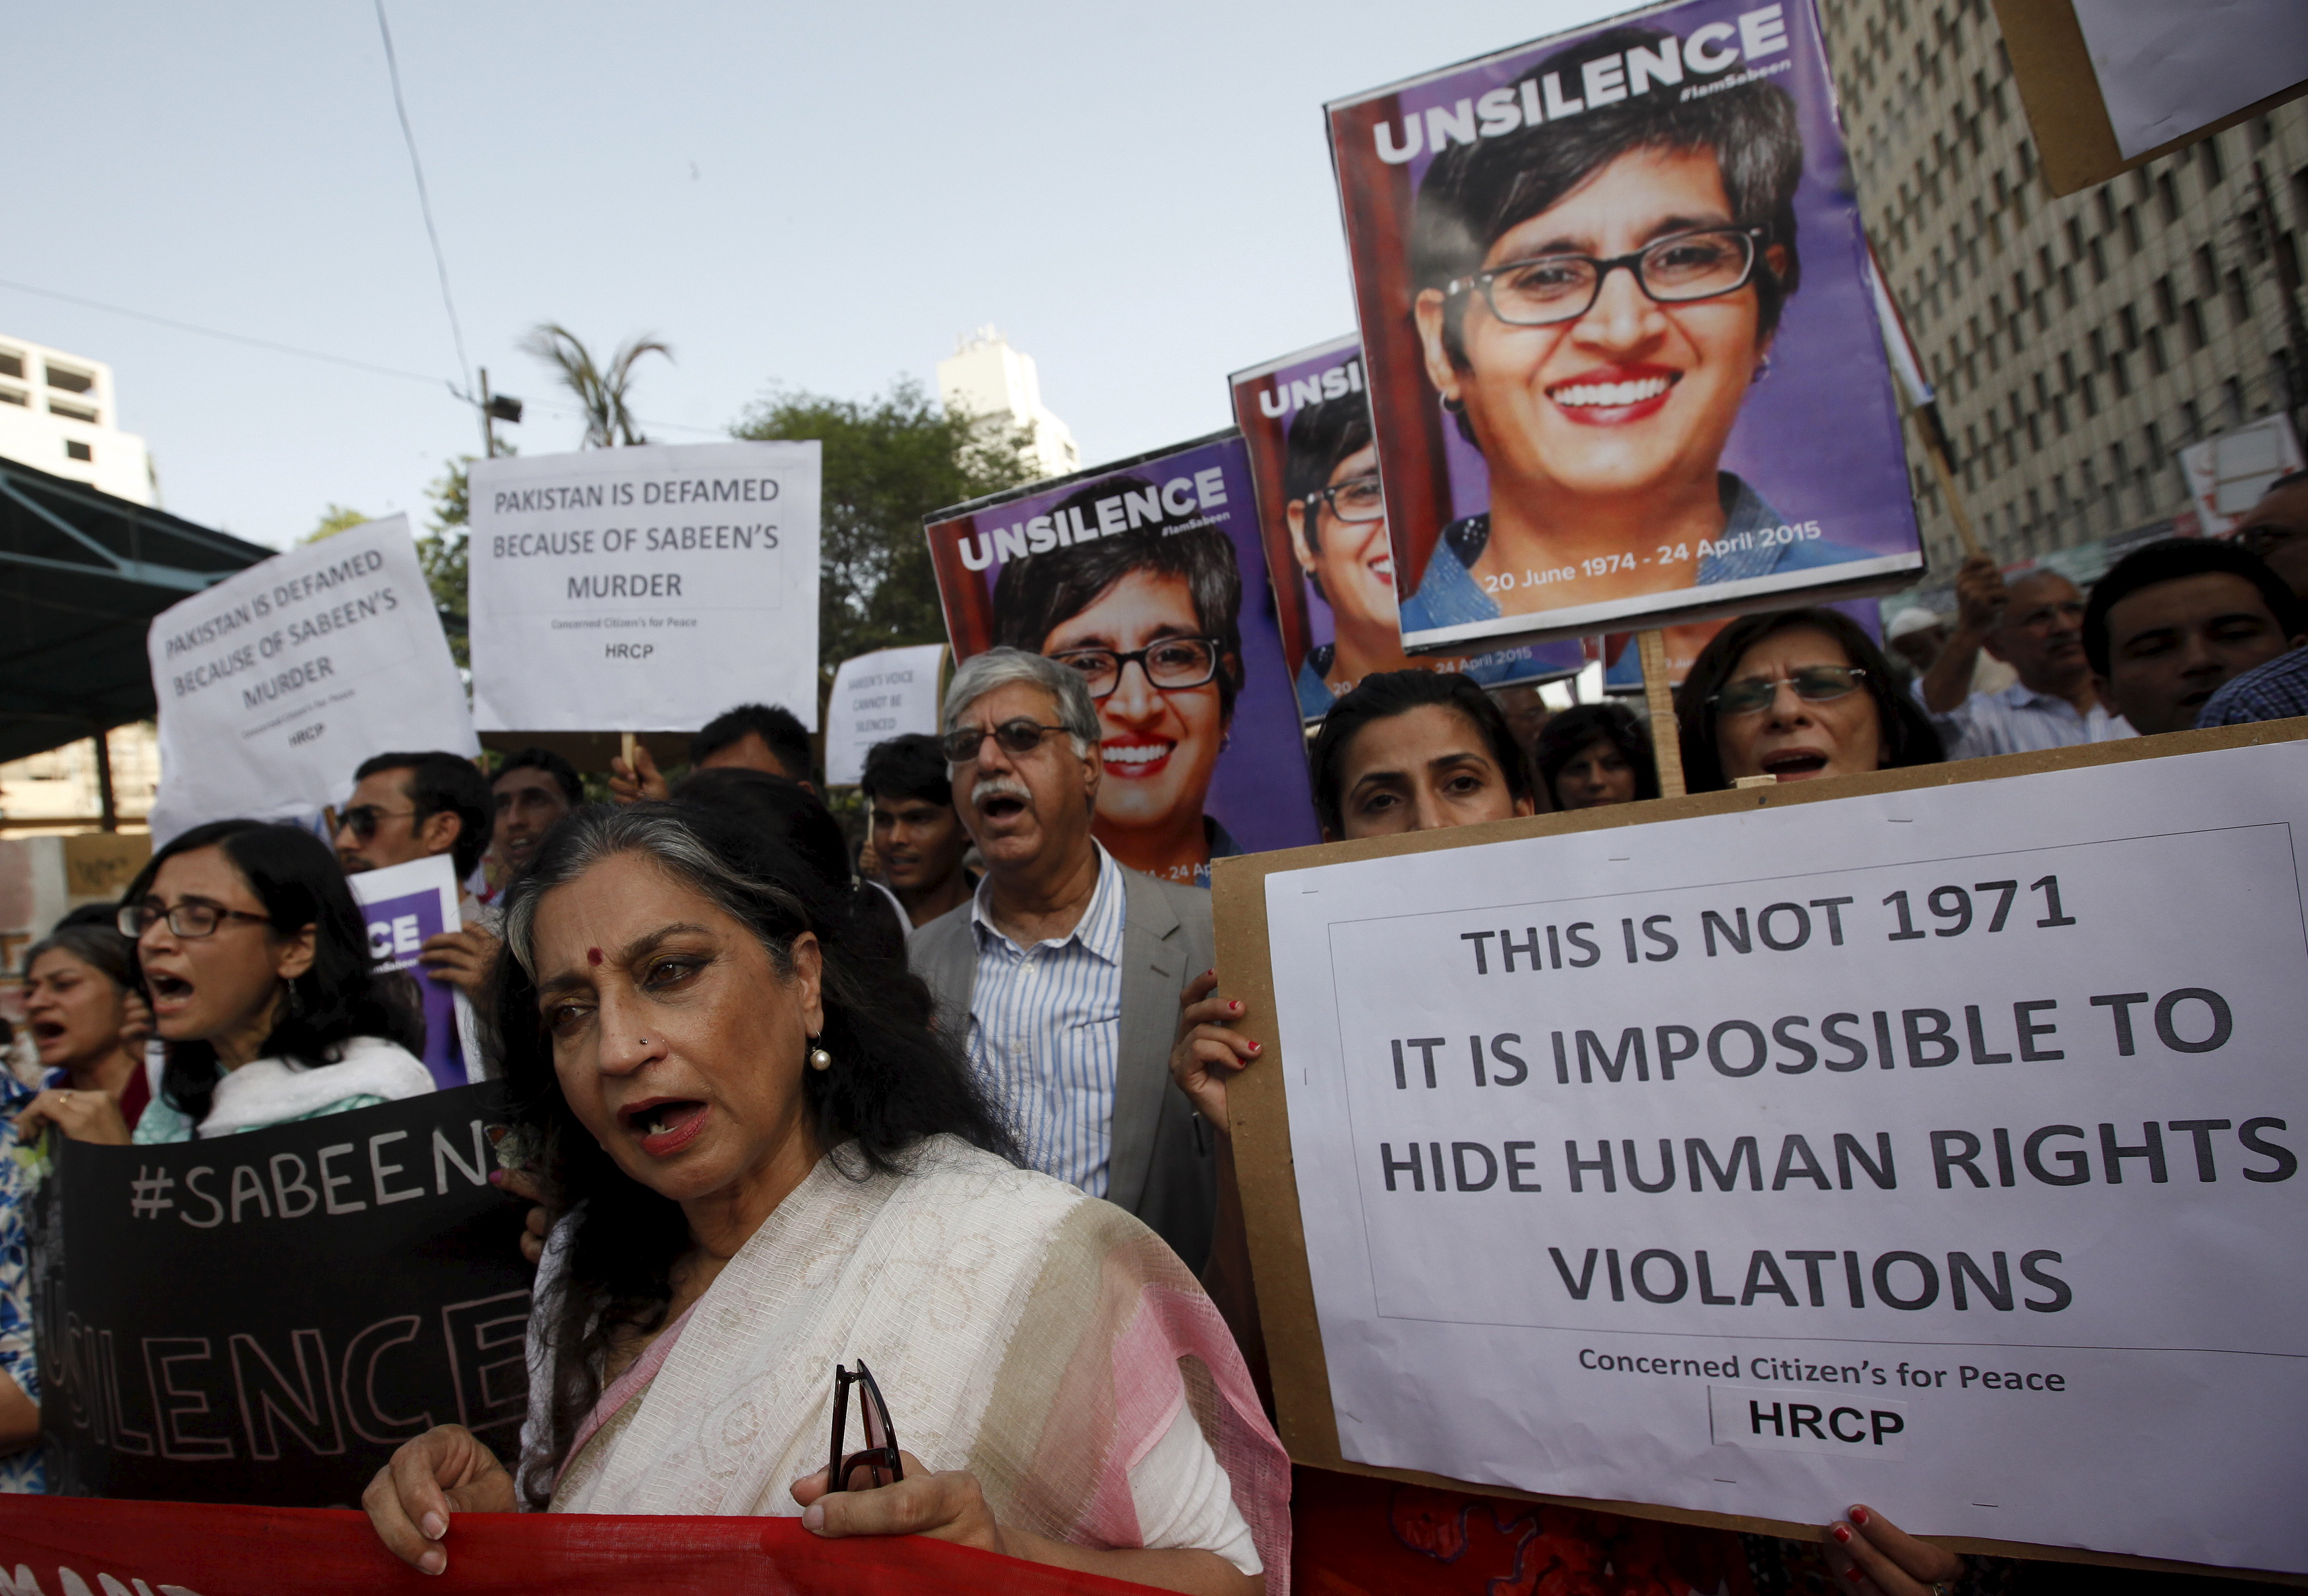 People chant slogans as they hold signs and pictures of Sabeen Mahmud, a human rights activist who was shot by gunmen, during a protest demanding justice outside the Press Club in  Karachi, Pakistan, April 30, 2015.